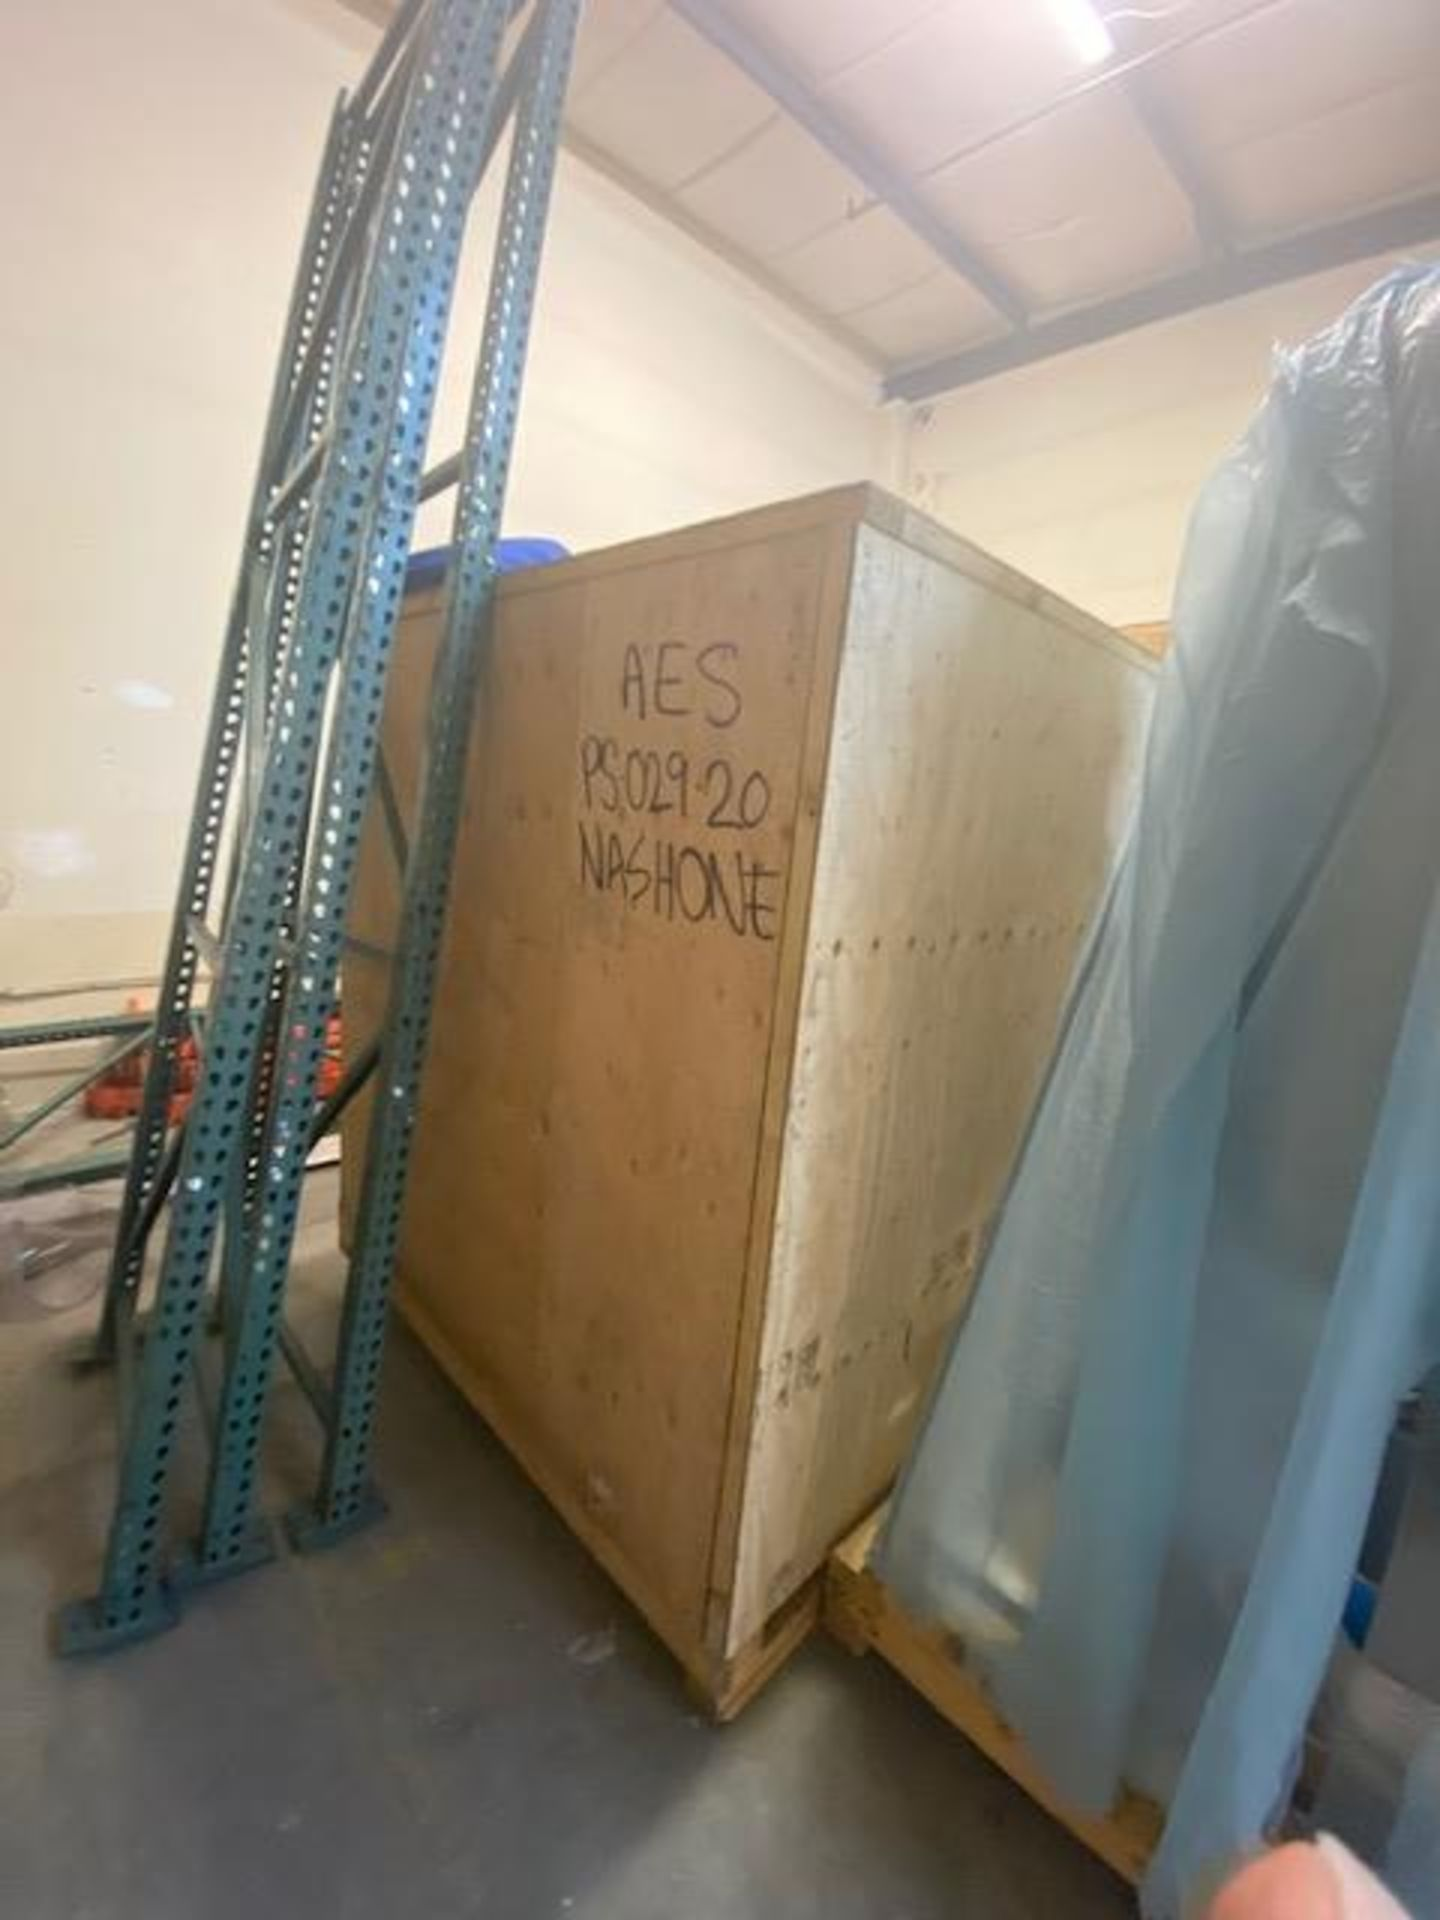 UNUSED/Still-In-Crate-Pinnacle Stainless Complete Extraction Bundle. LISTING HAS FULL INVENTORY. - Image 12 of 14